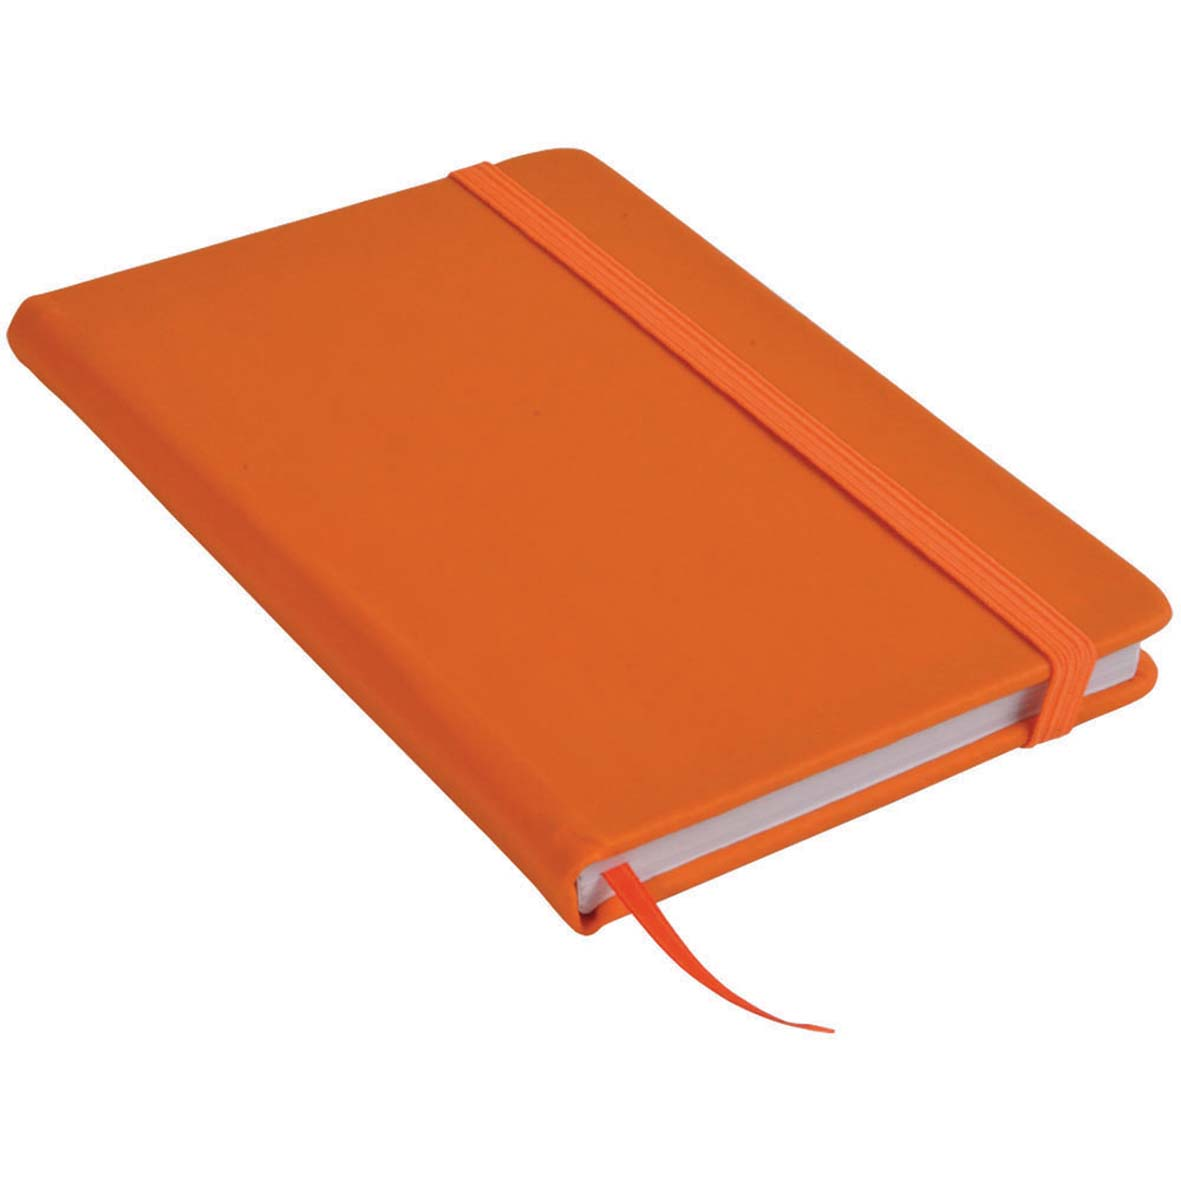 Note book with PU cover and elastic band for closing -  Orange sip-1441407